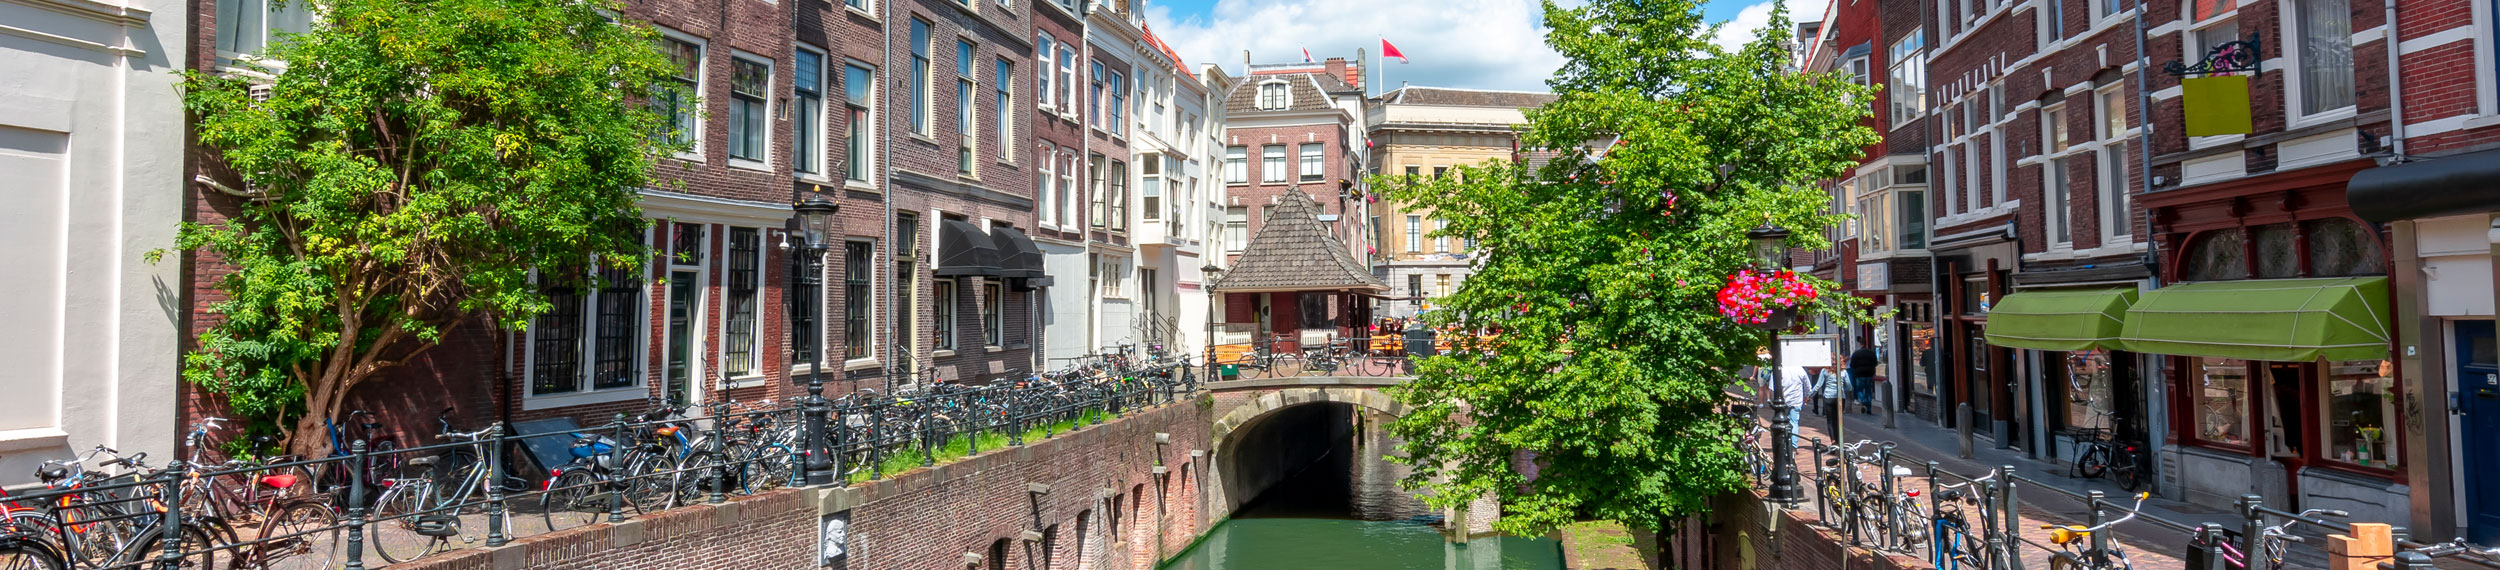 City shot of a canals and buildings in Utrecht, Netherlands.